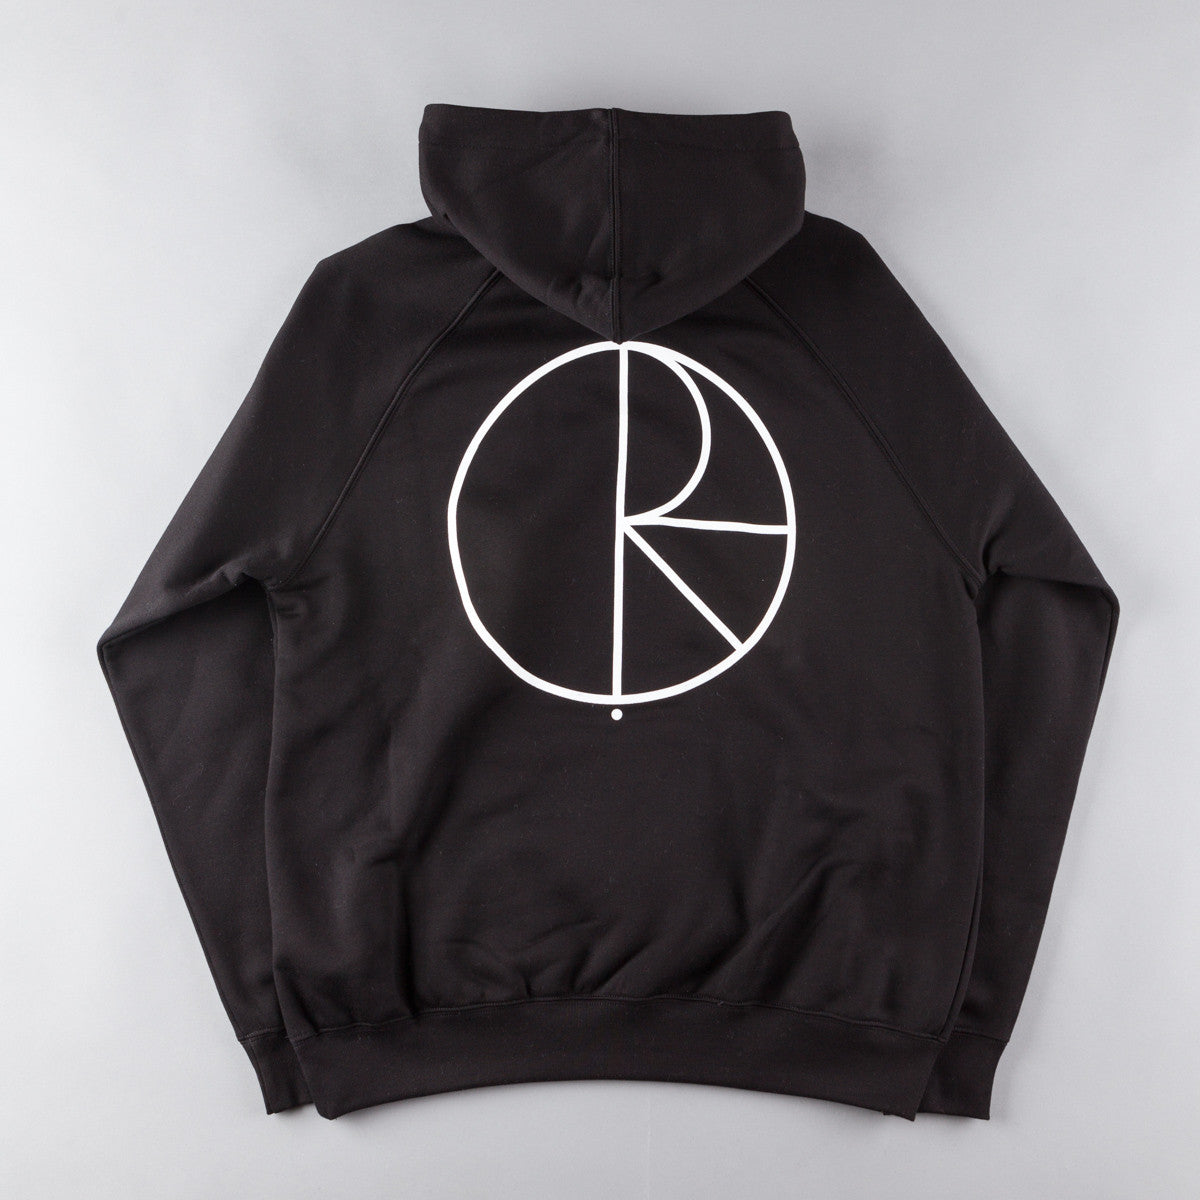 Polar Stroke Logo Hooded Sweatshirt - Black